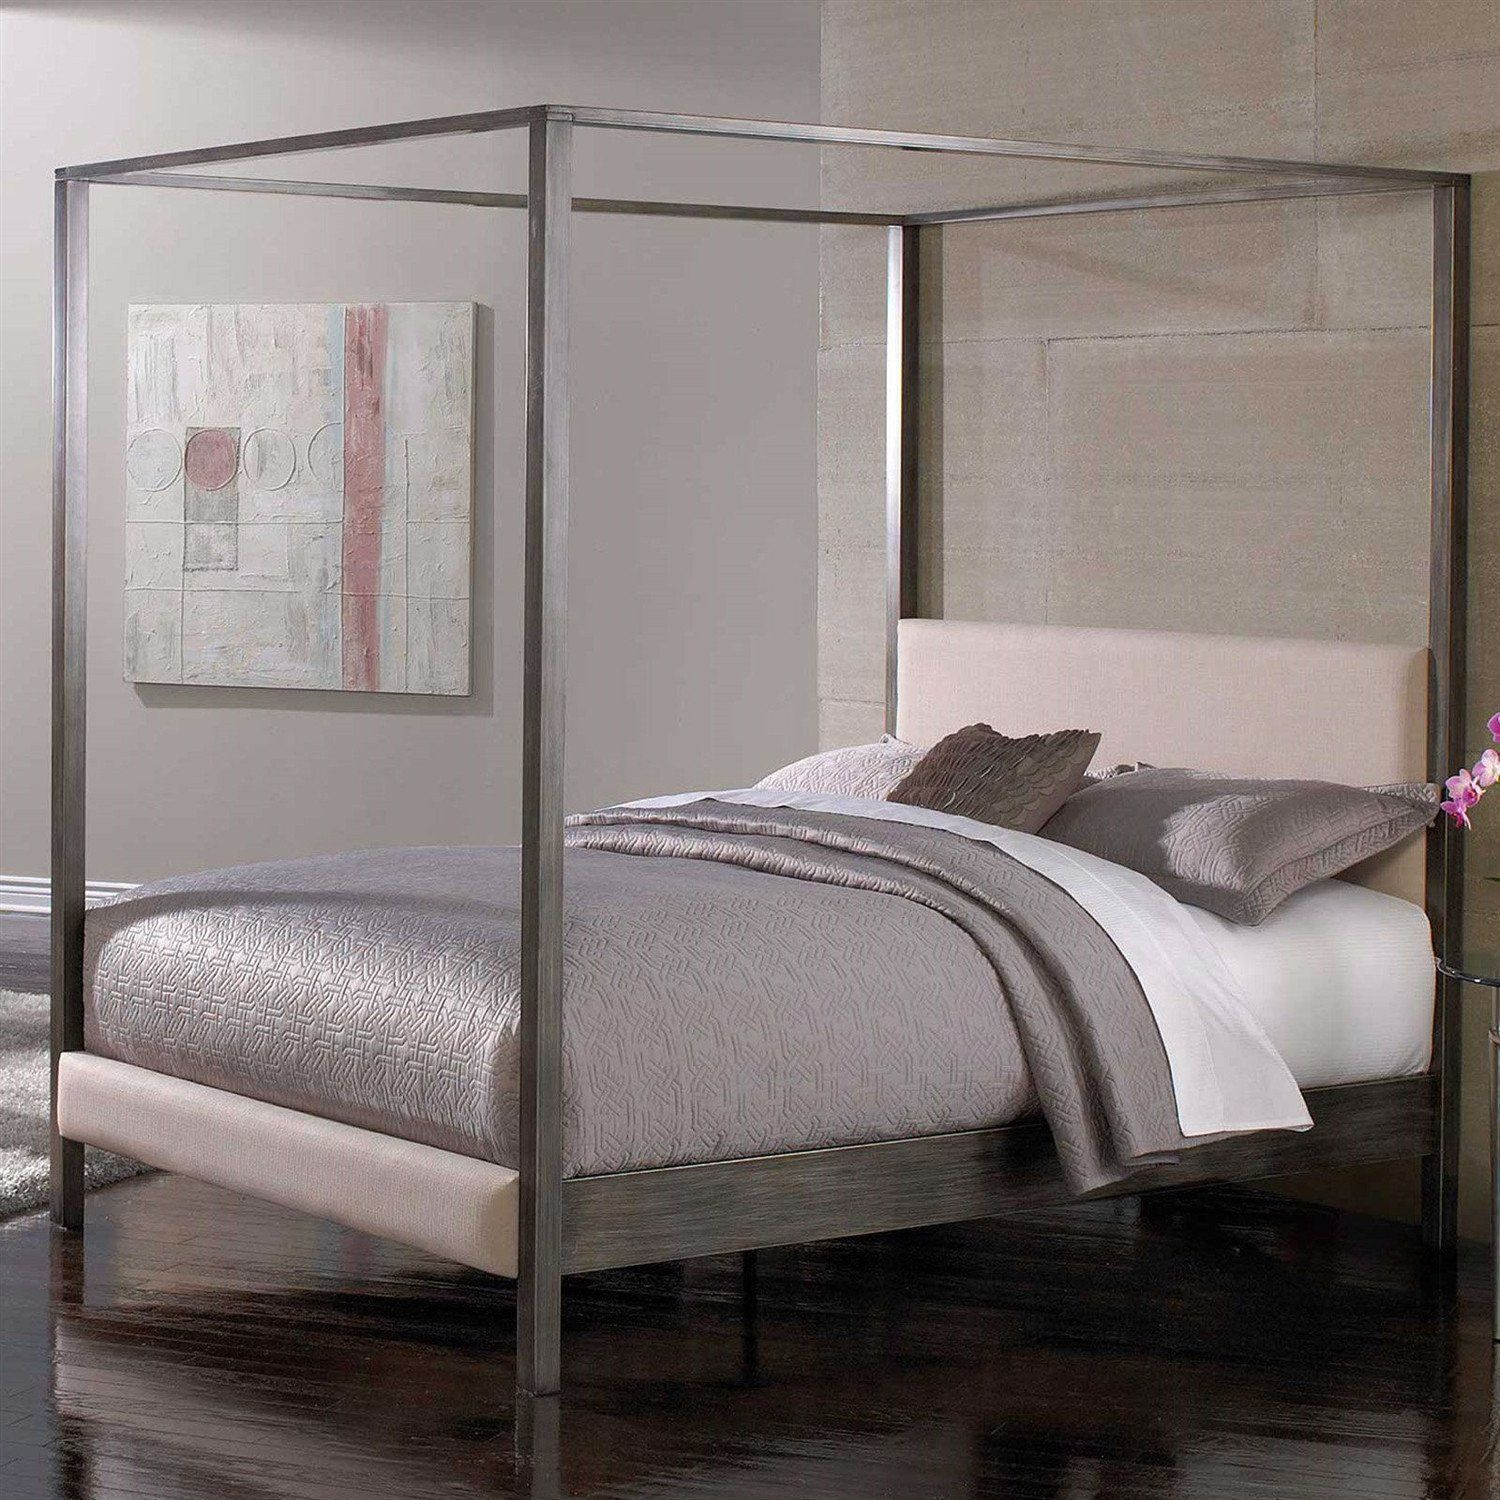 Queen size Modern Metal Platform Canopy Bed Frame with